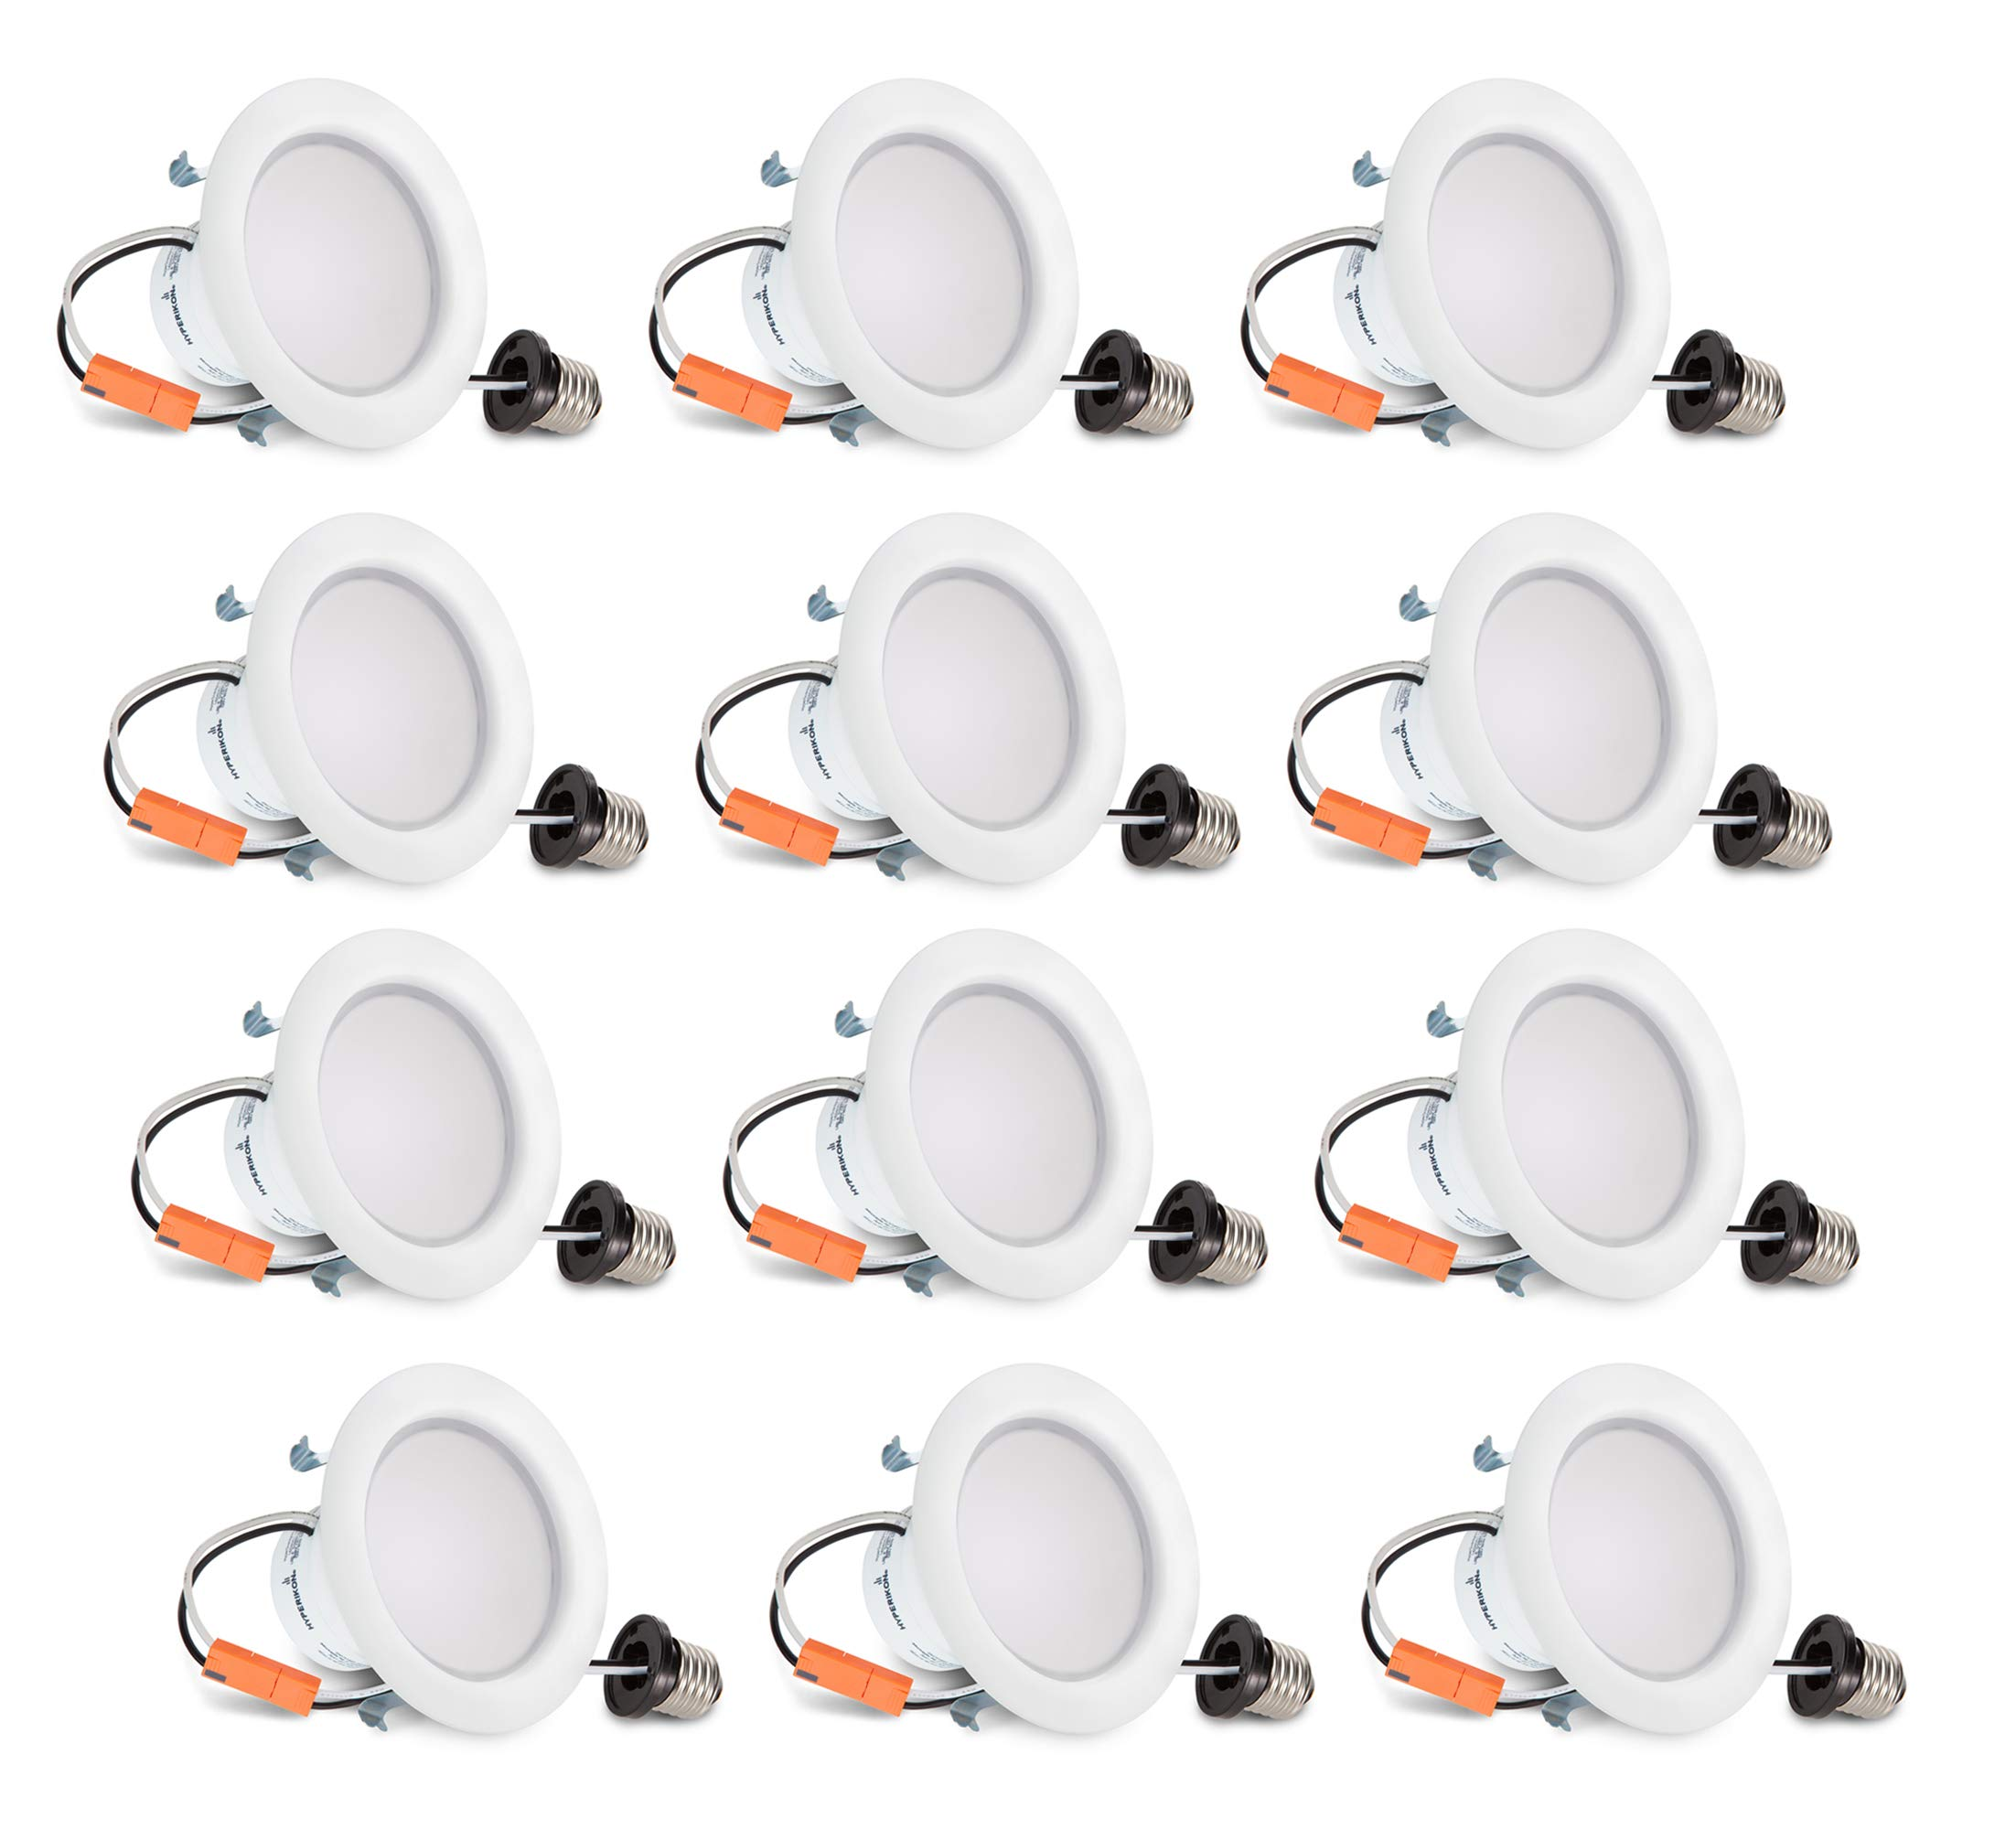 HyperSelect 4 Inch LED Recessed Lights, 9W (65 Watt), Non Dimmable Downlight, 4000K Daylight, 12 Pack